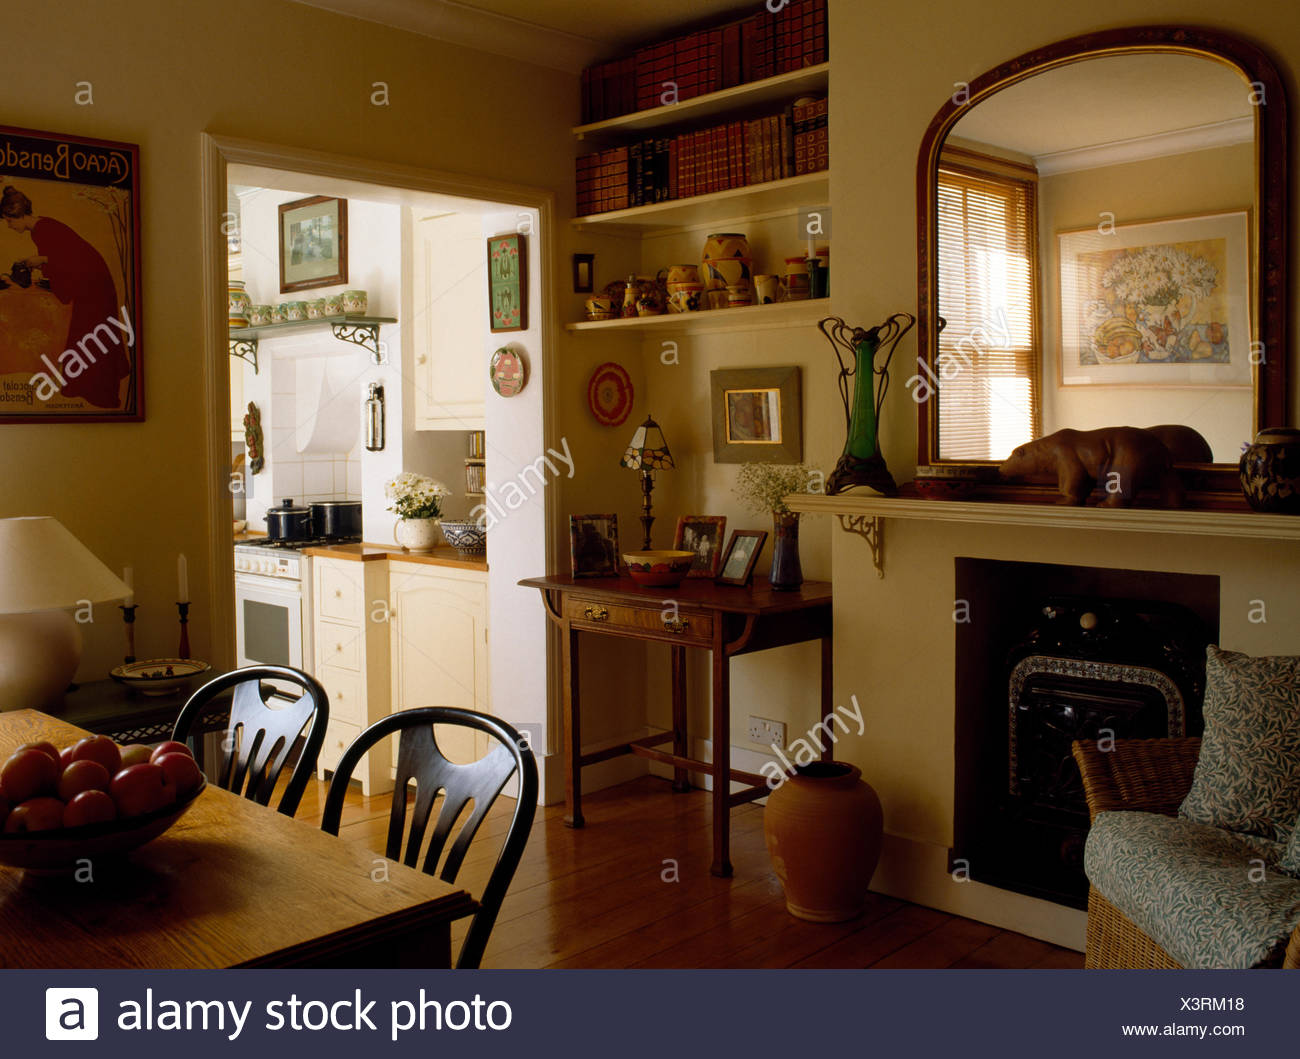 Victorian Mirror Above Fireplace In Nineties Dining Room With Doorway To Kitchen Stock Photo Alamy